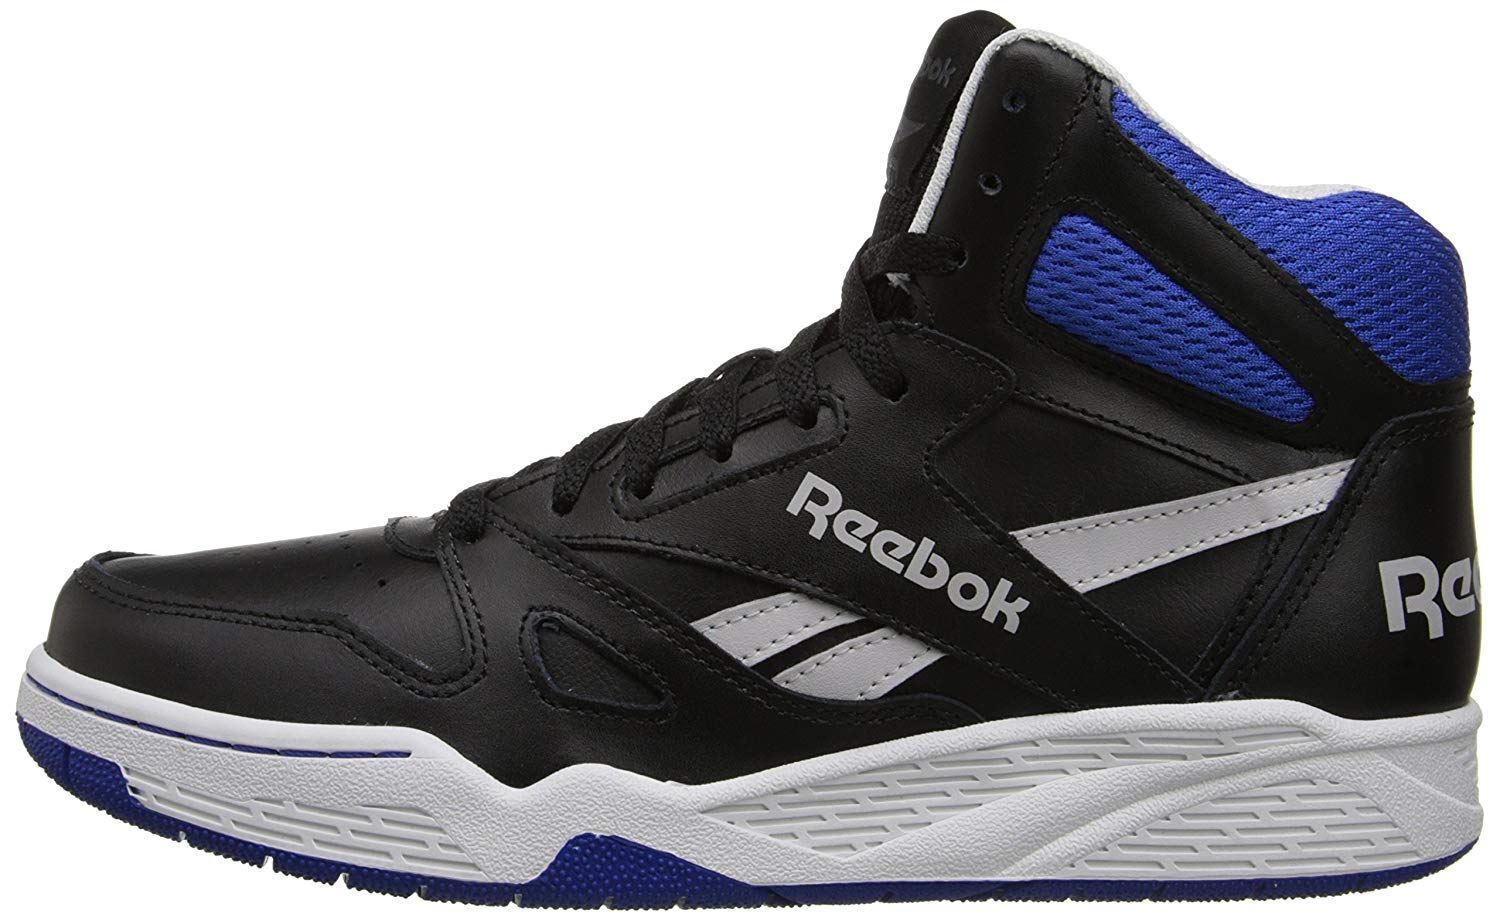 Reebok Royal BB4500 Left Angle